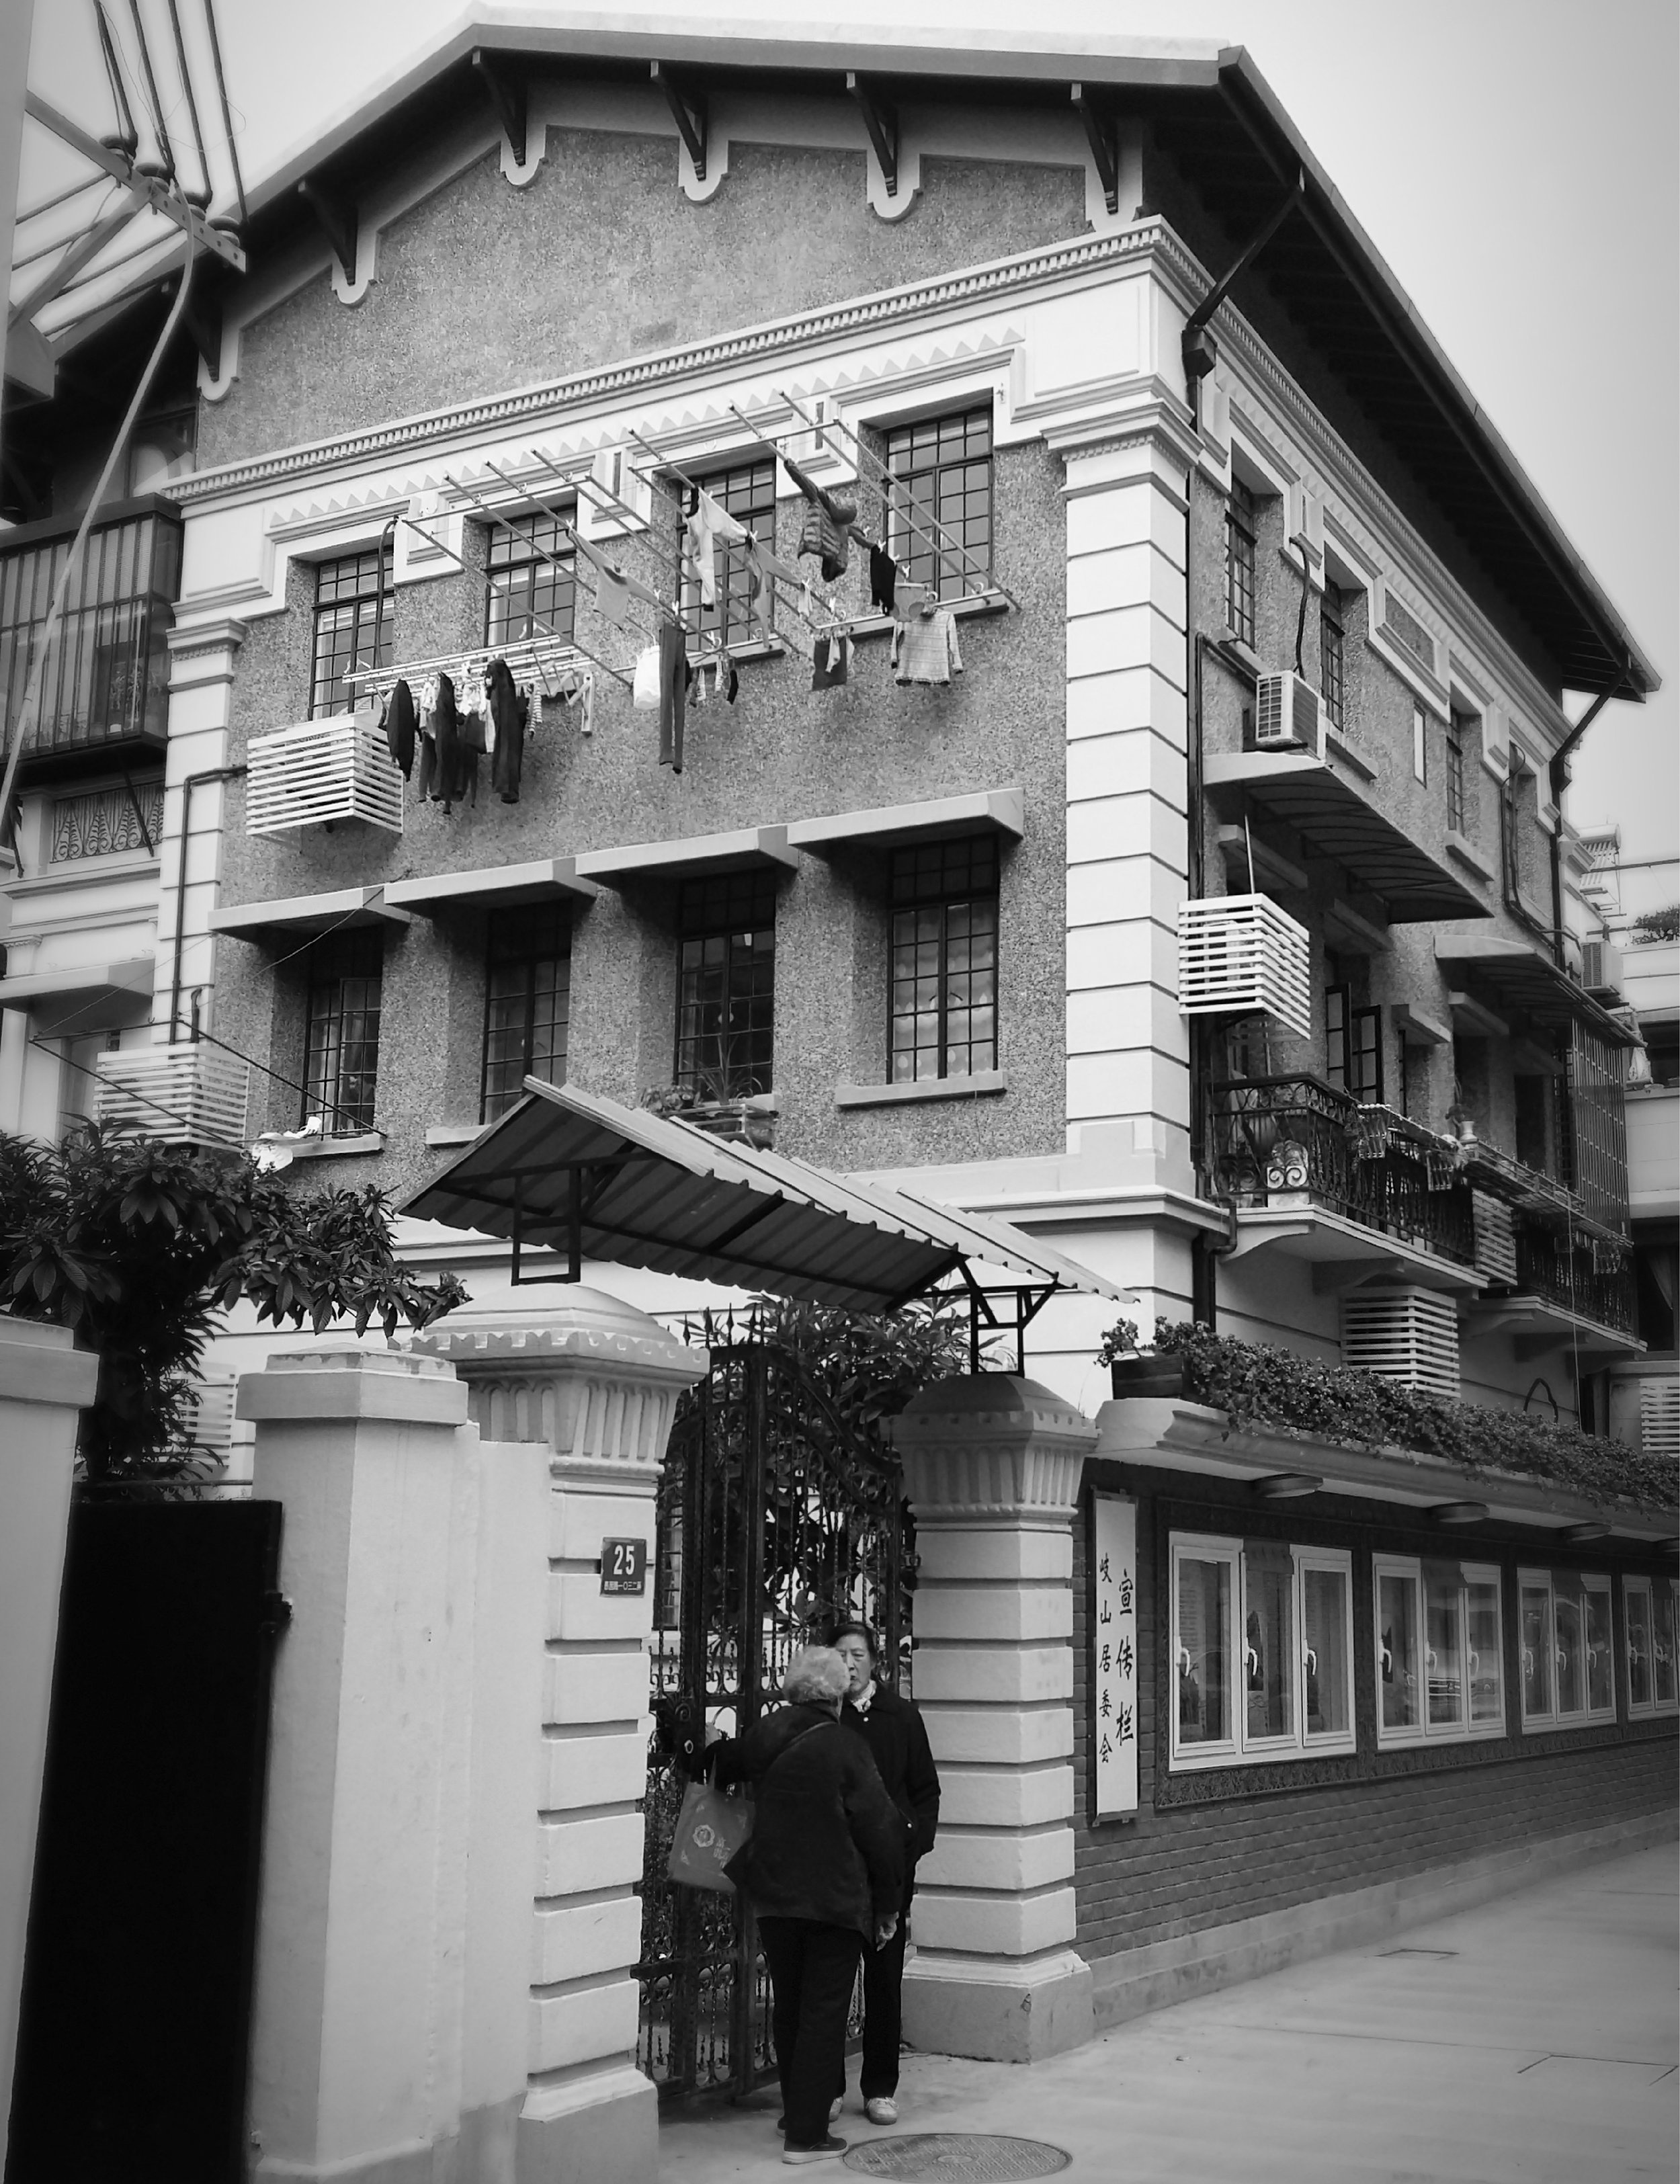 Yuyuan Road and its laneways has some of the city's most significant historic buildings.